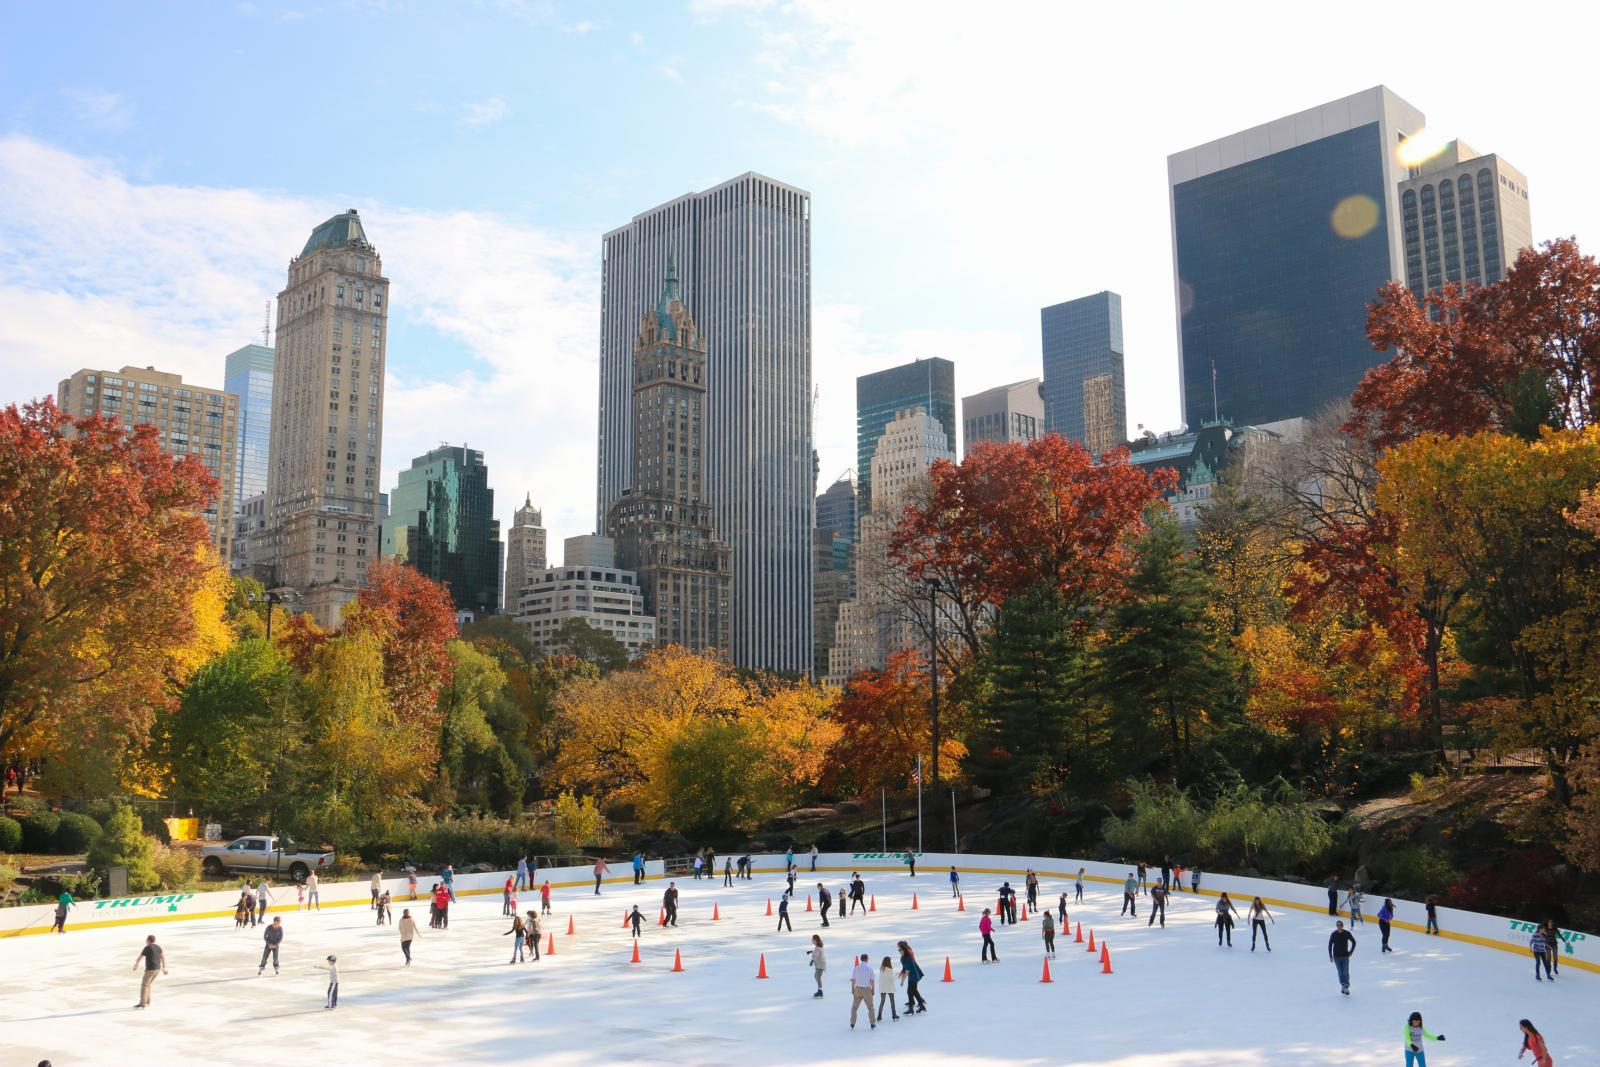 Wollman Ice Rink Central Park